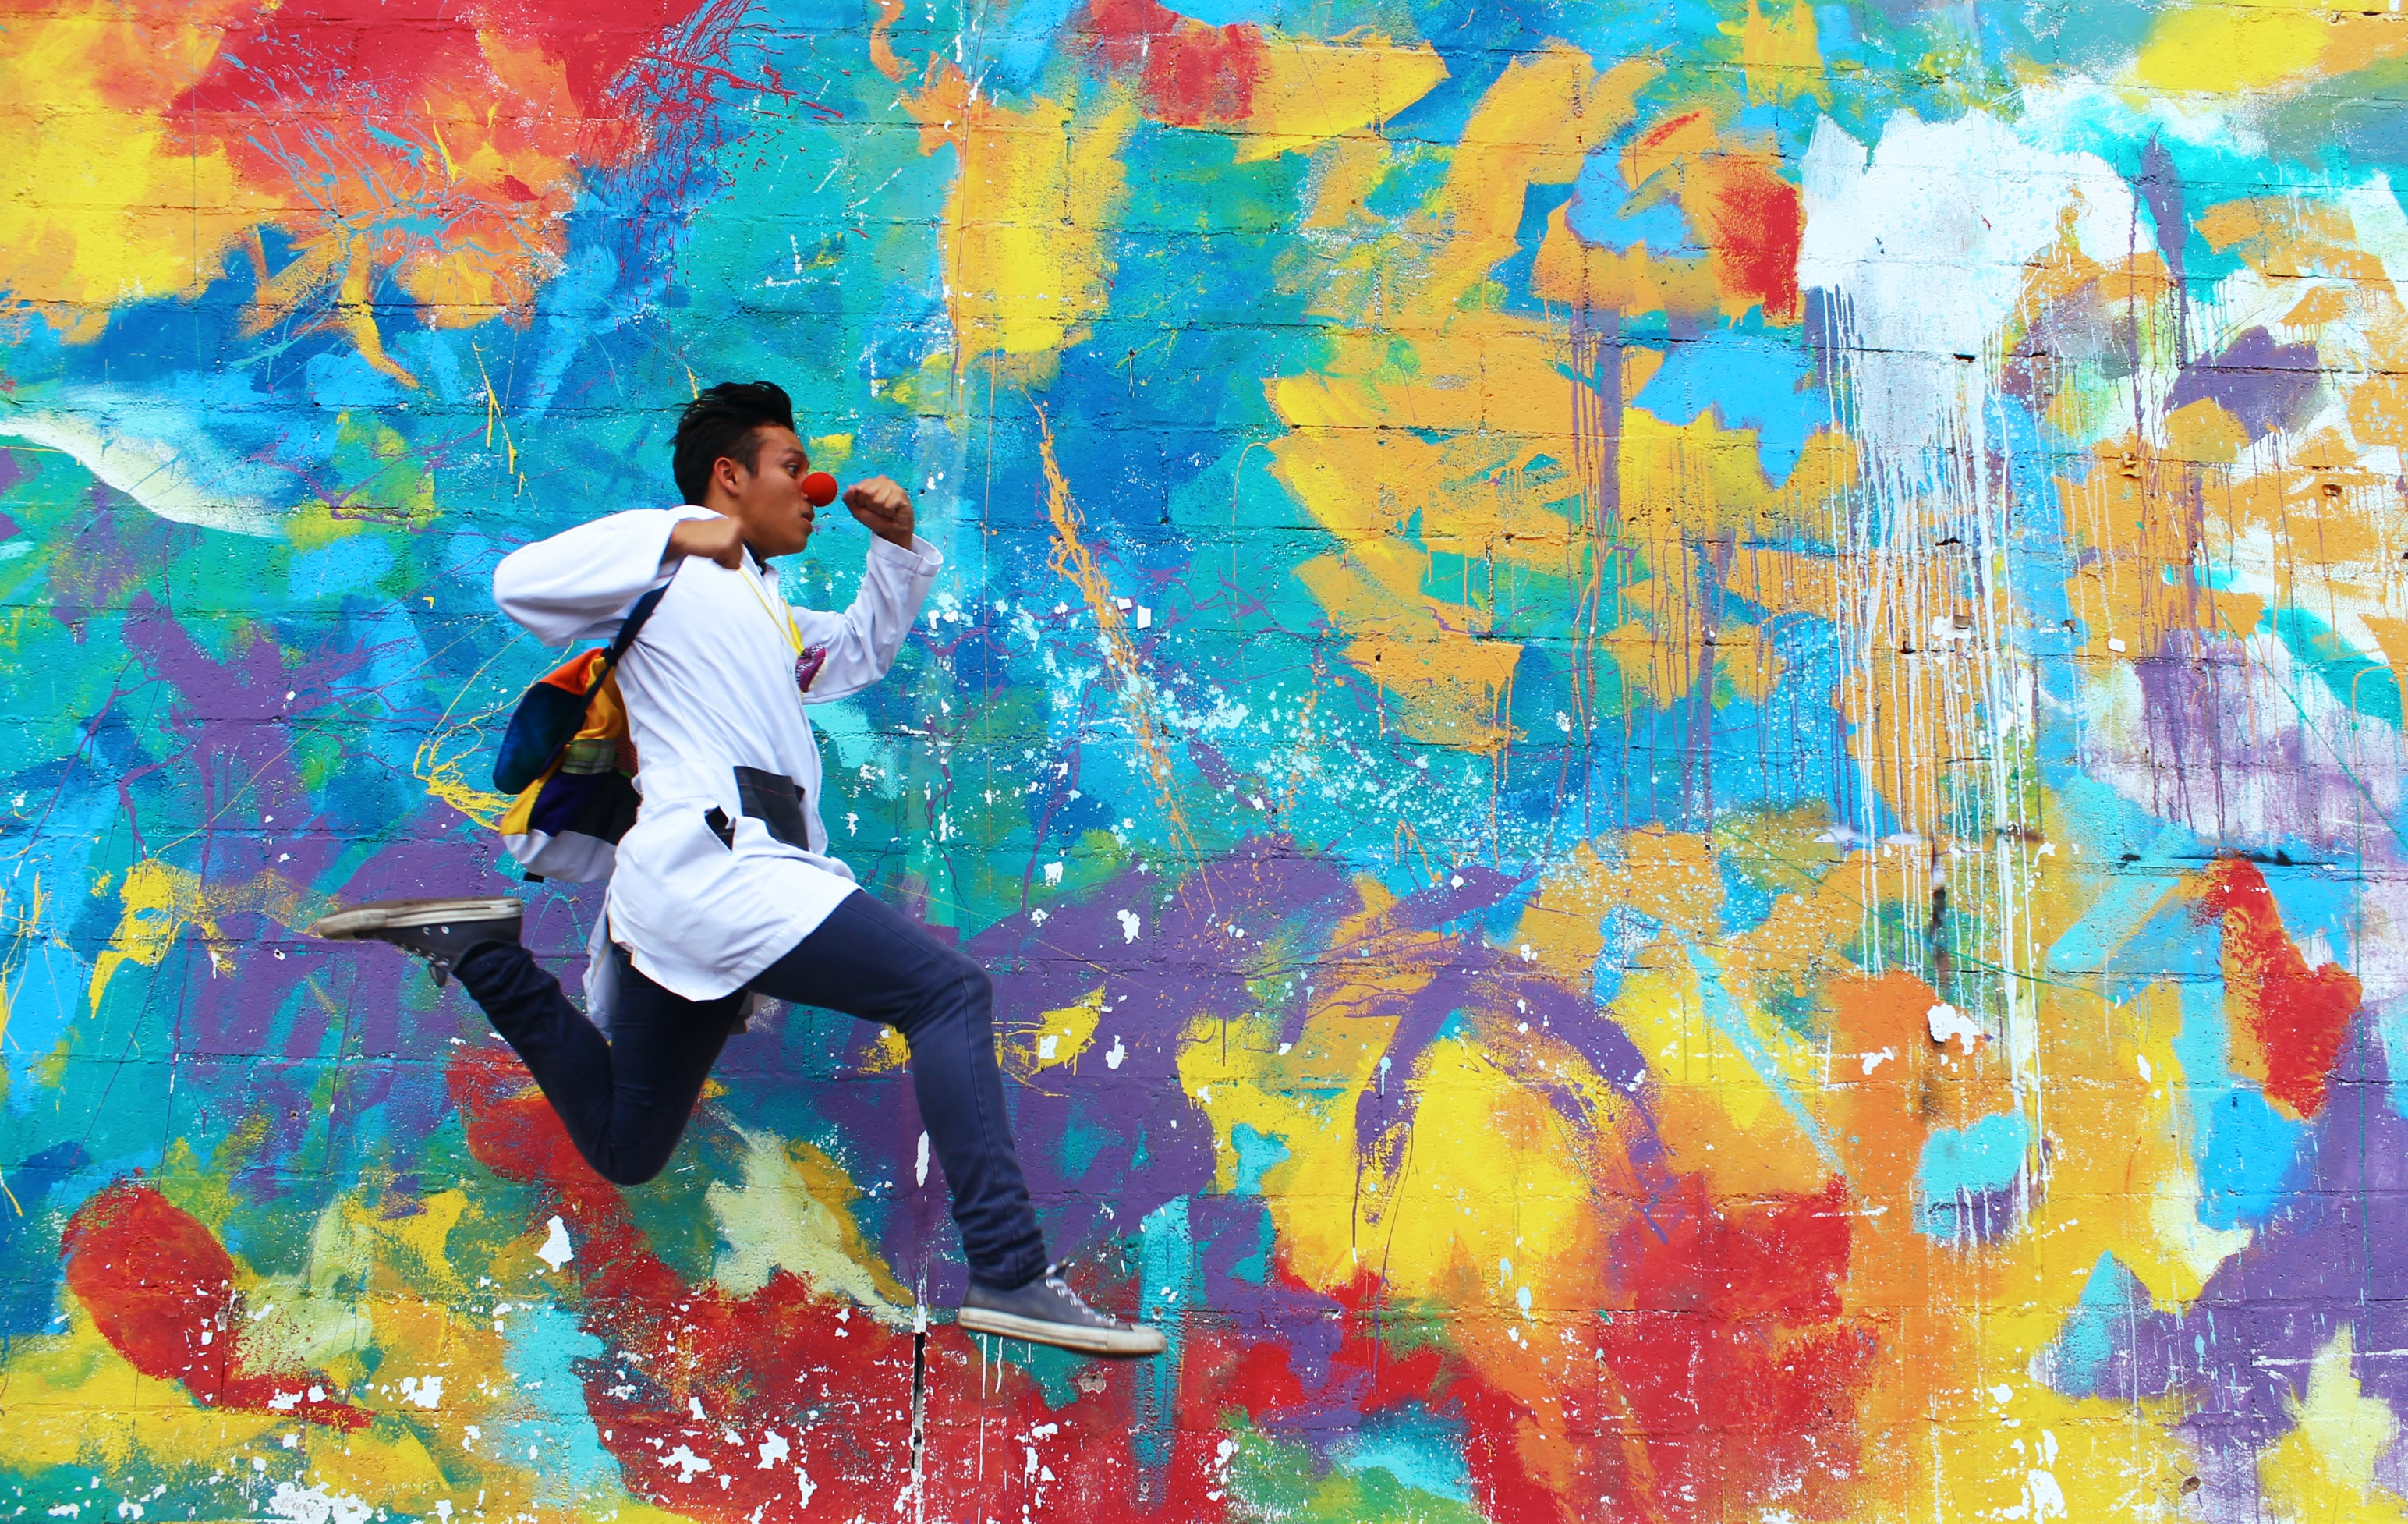 A dark-skinned male leaping along the sidewalk in front of an abstractly painted wall.